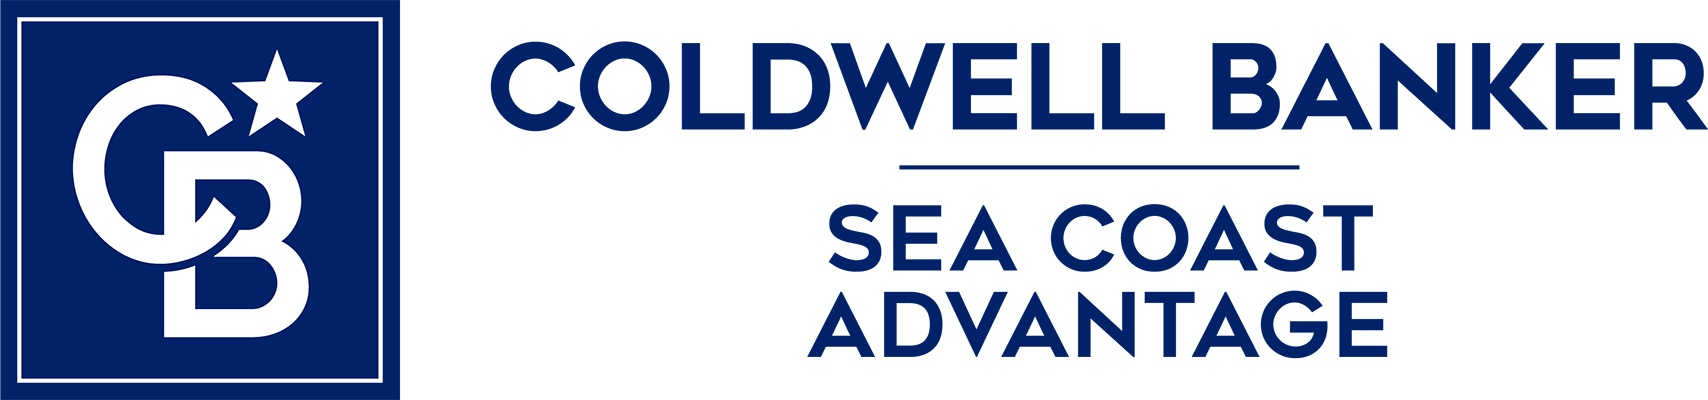 Rebecca Moxey - Coldwell Banker Sea Coast Advantage Realty